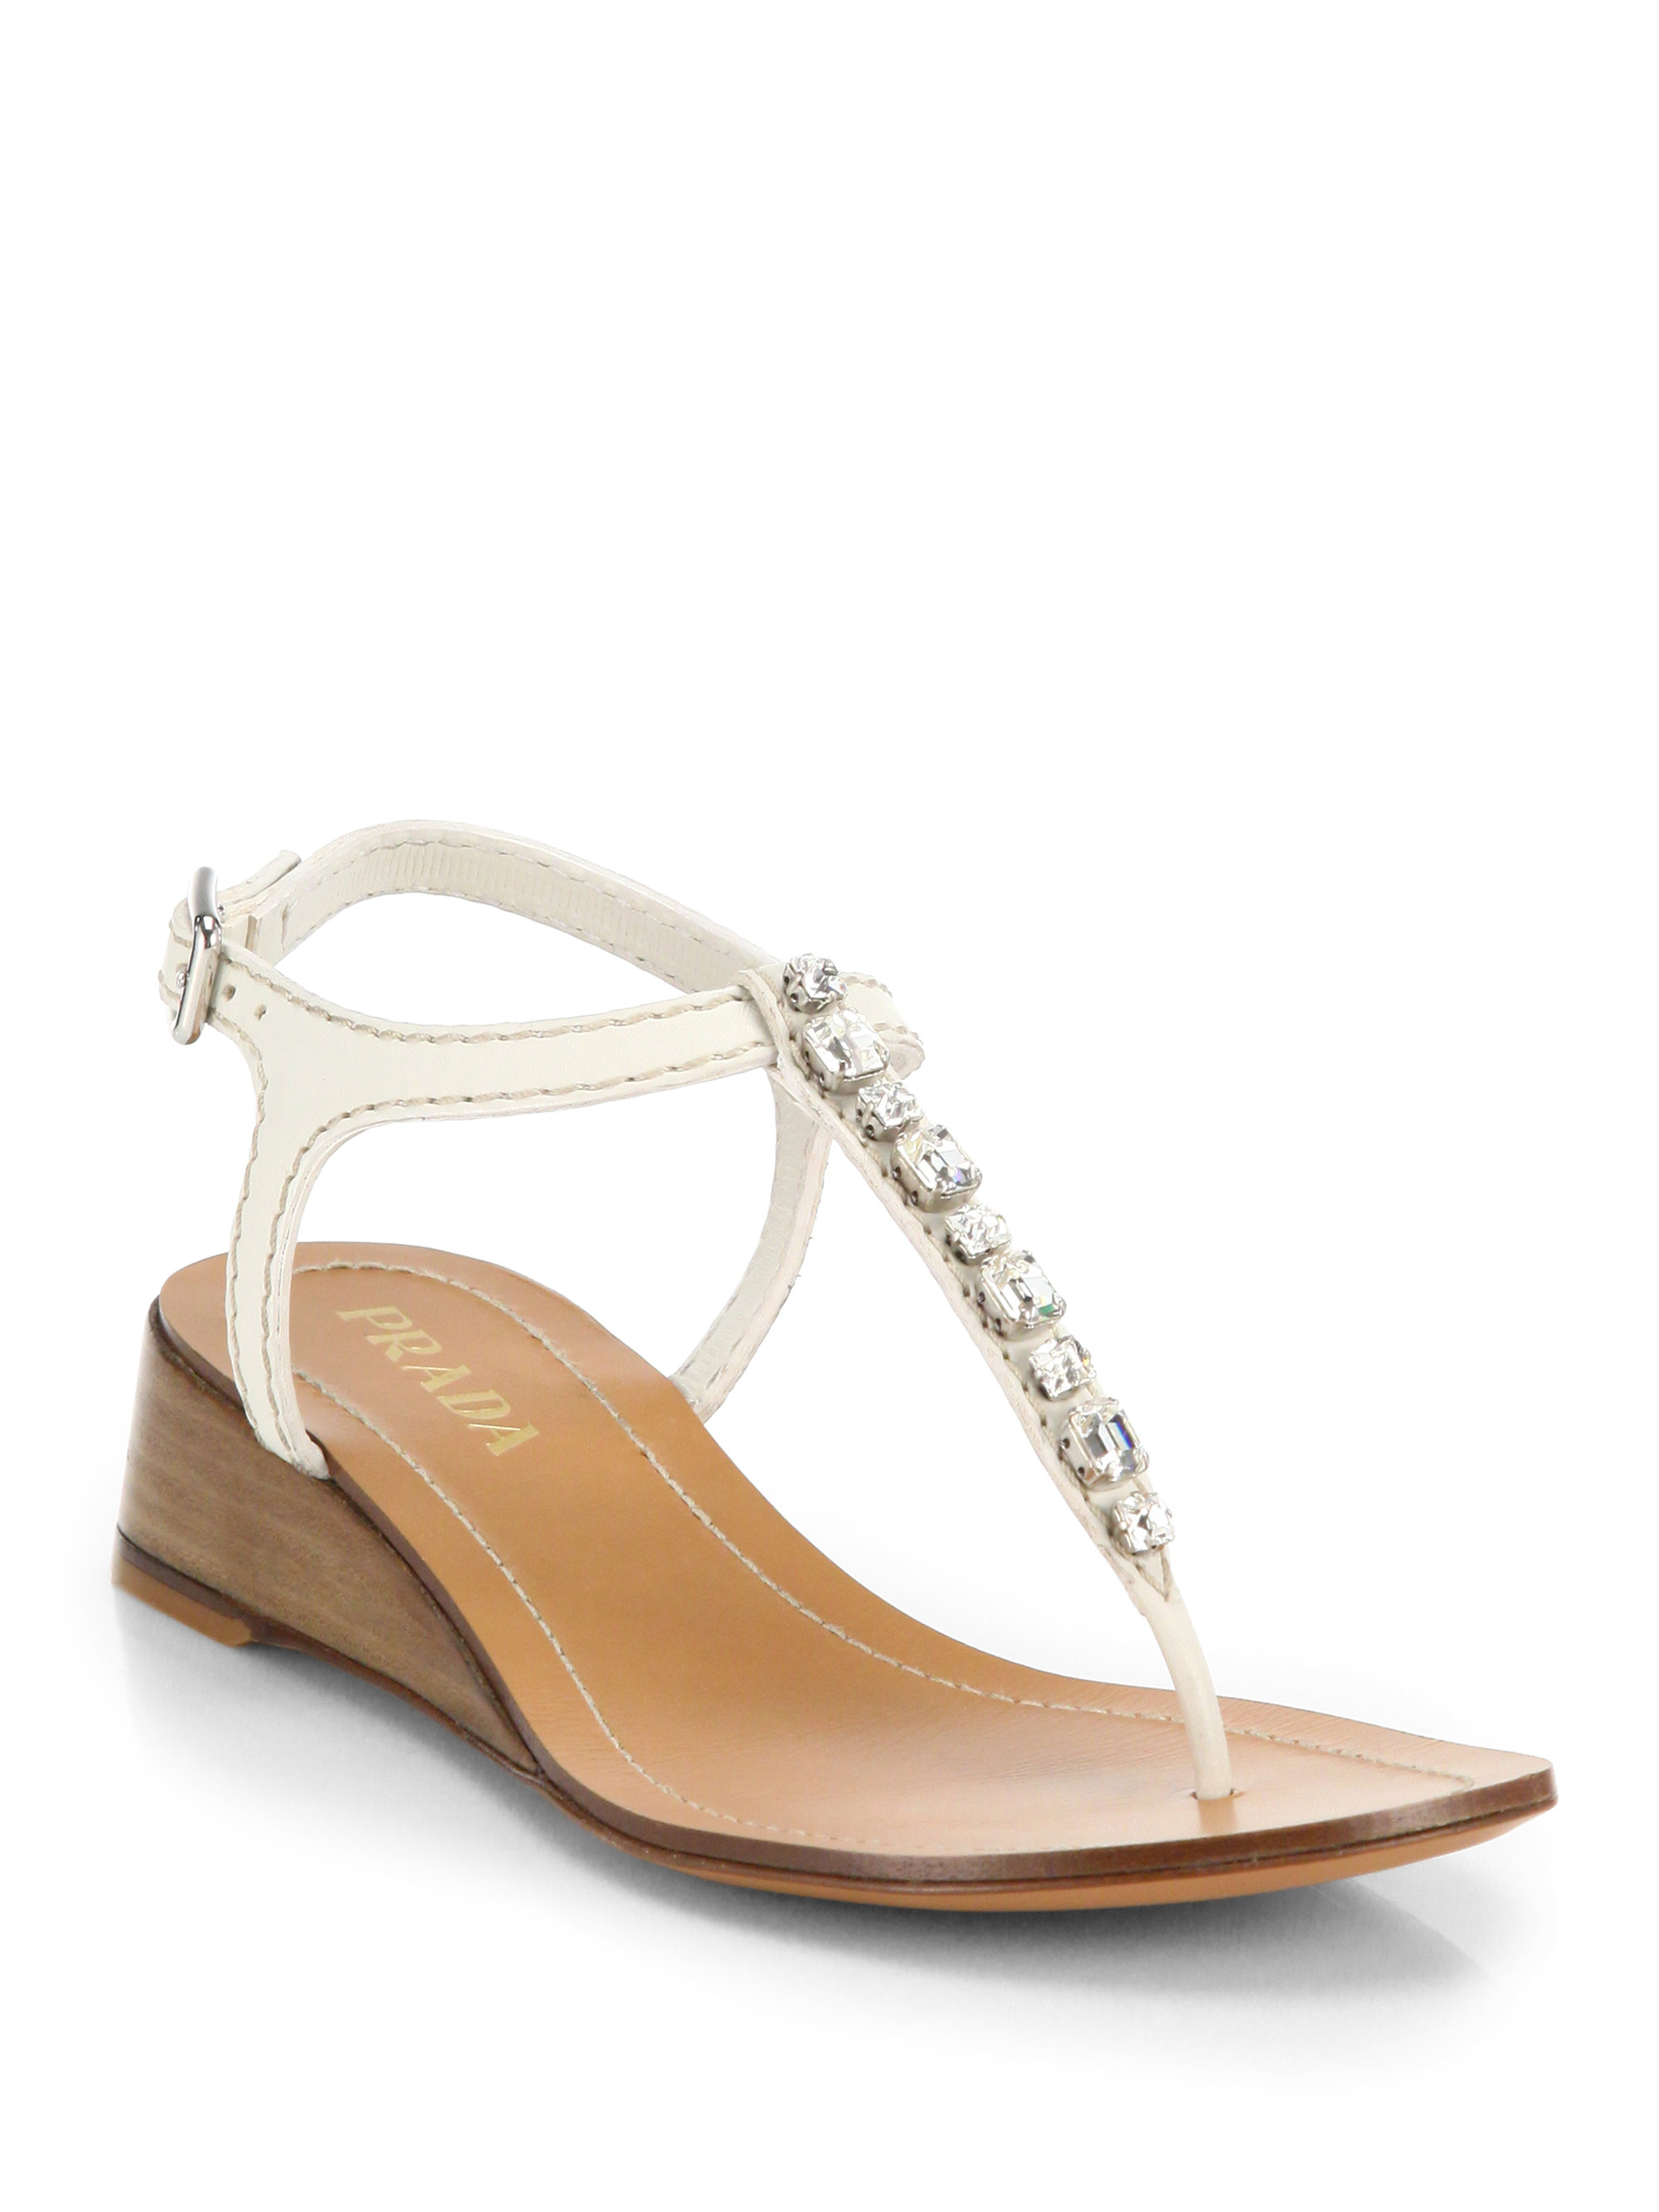 fcb39d2571f5 Lyst - Prada Swarovski Crystal Leather Wedge Thong Sandals in White